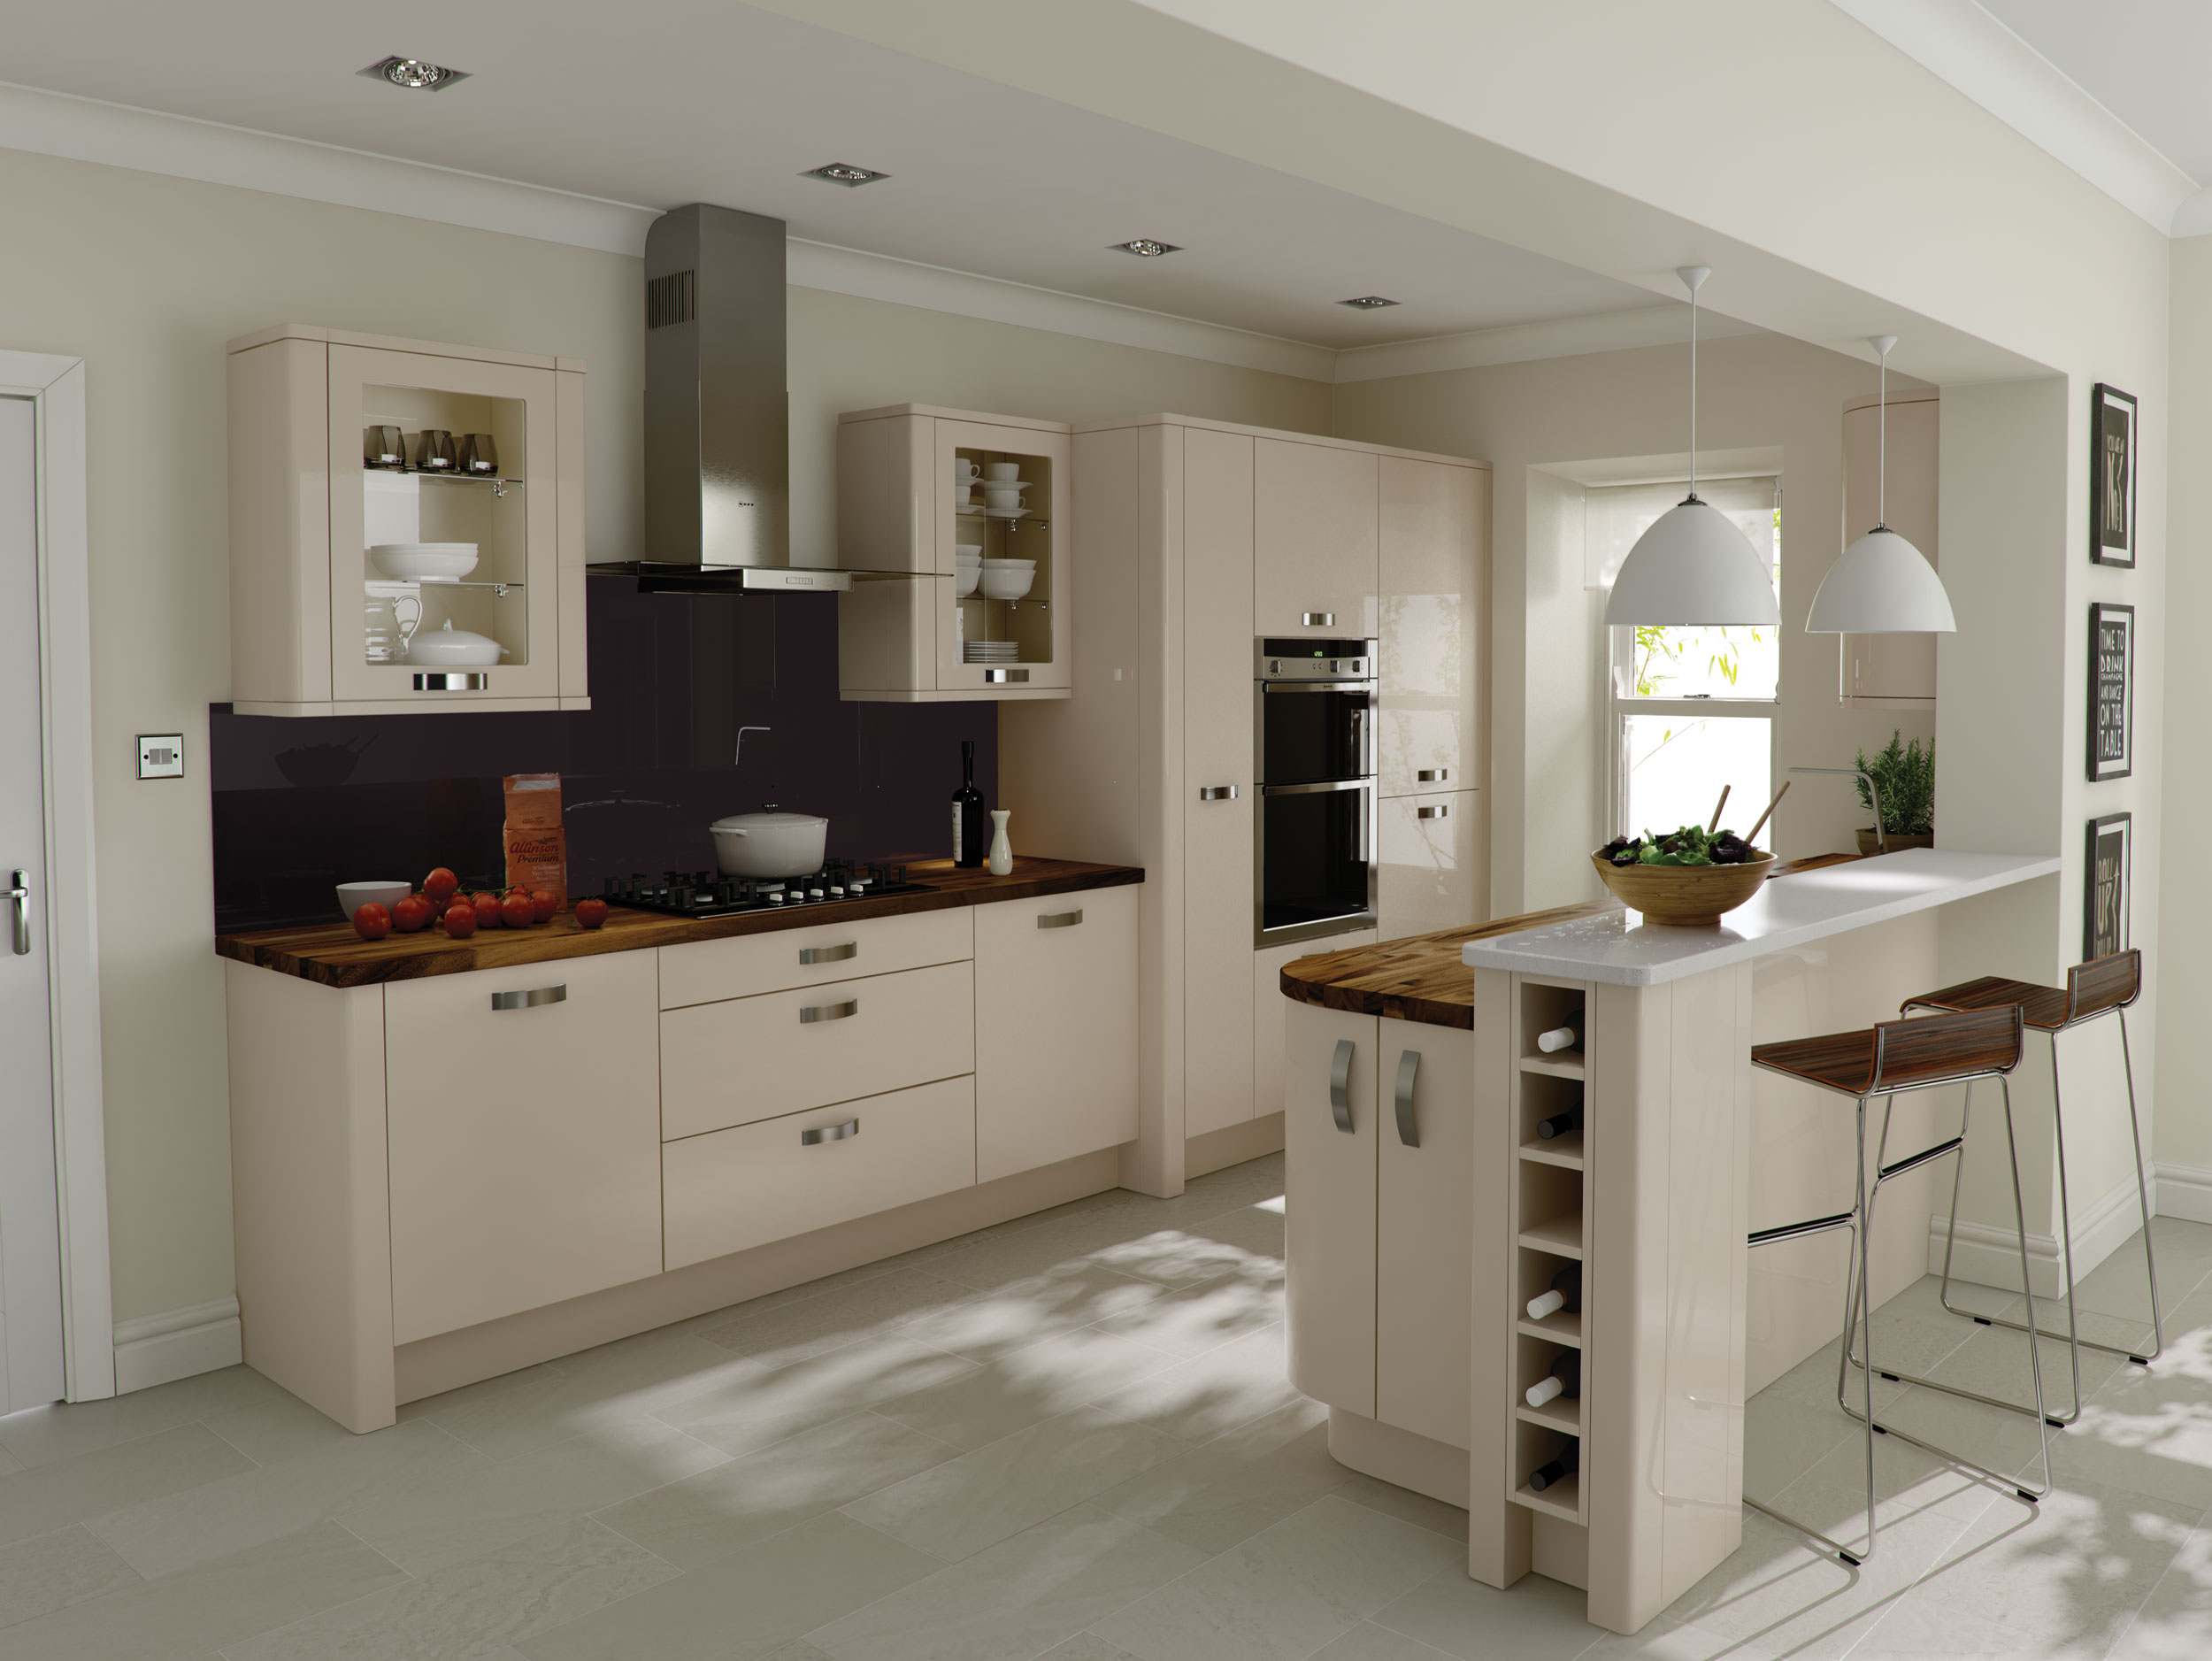 Porter beige contemporary kitchen in alabaster Modern kitchen design ideas 2015